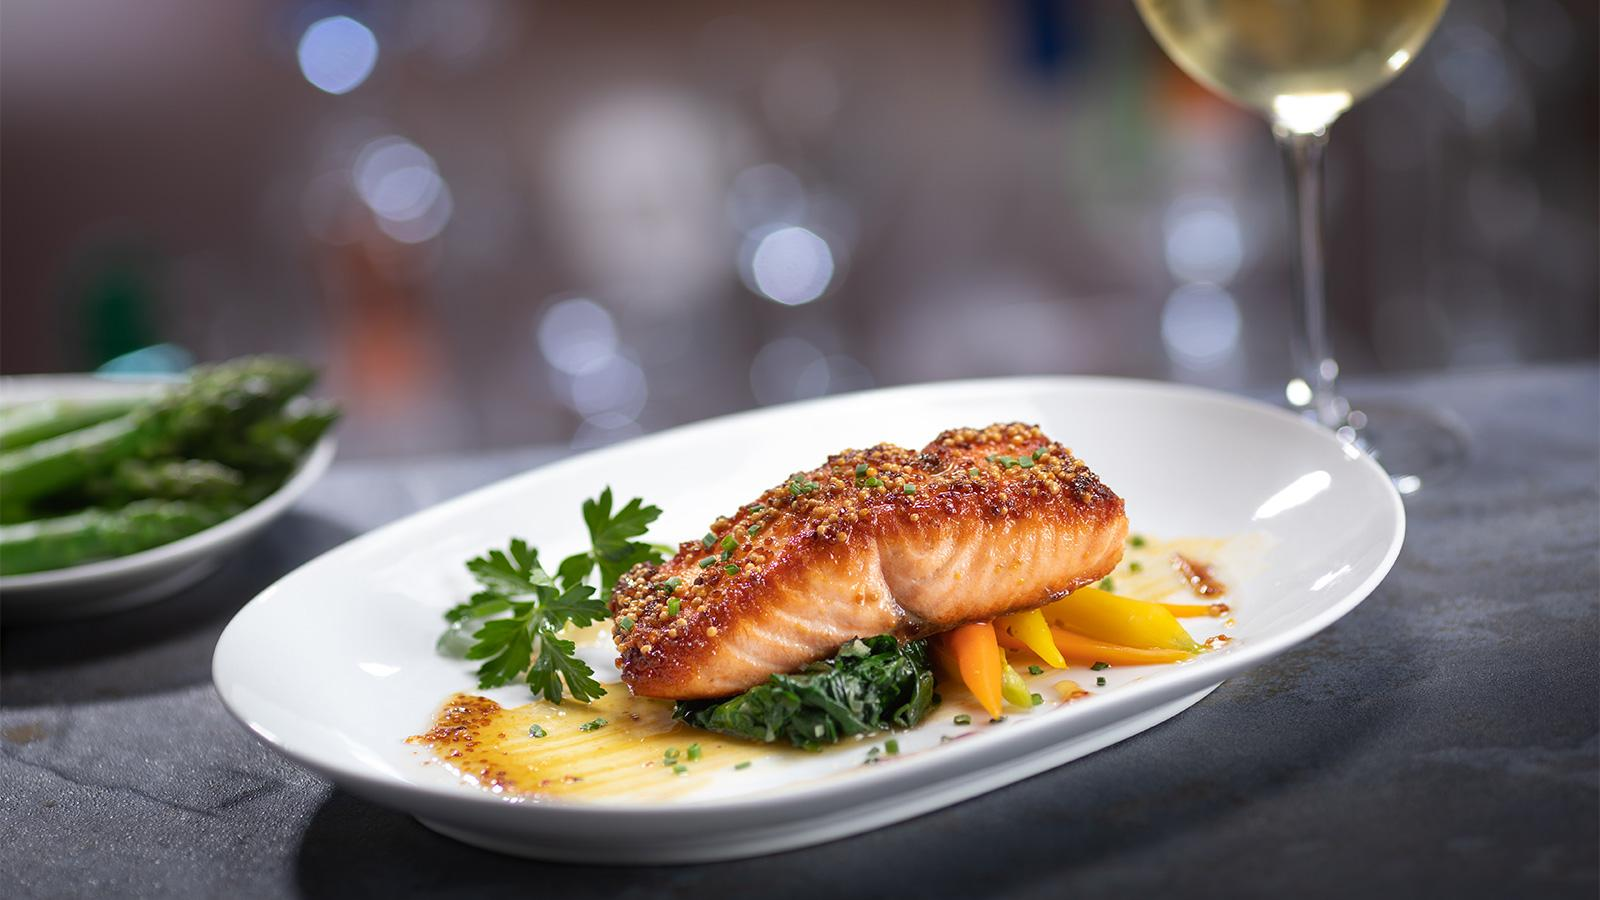 Mustard-glazed salmon at Eddie V's